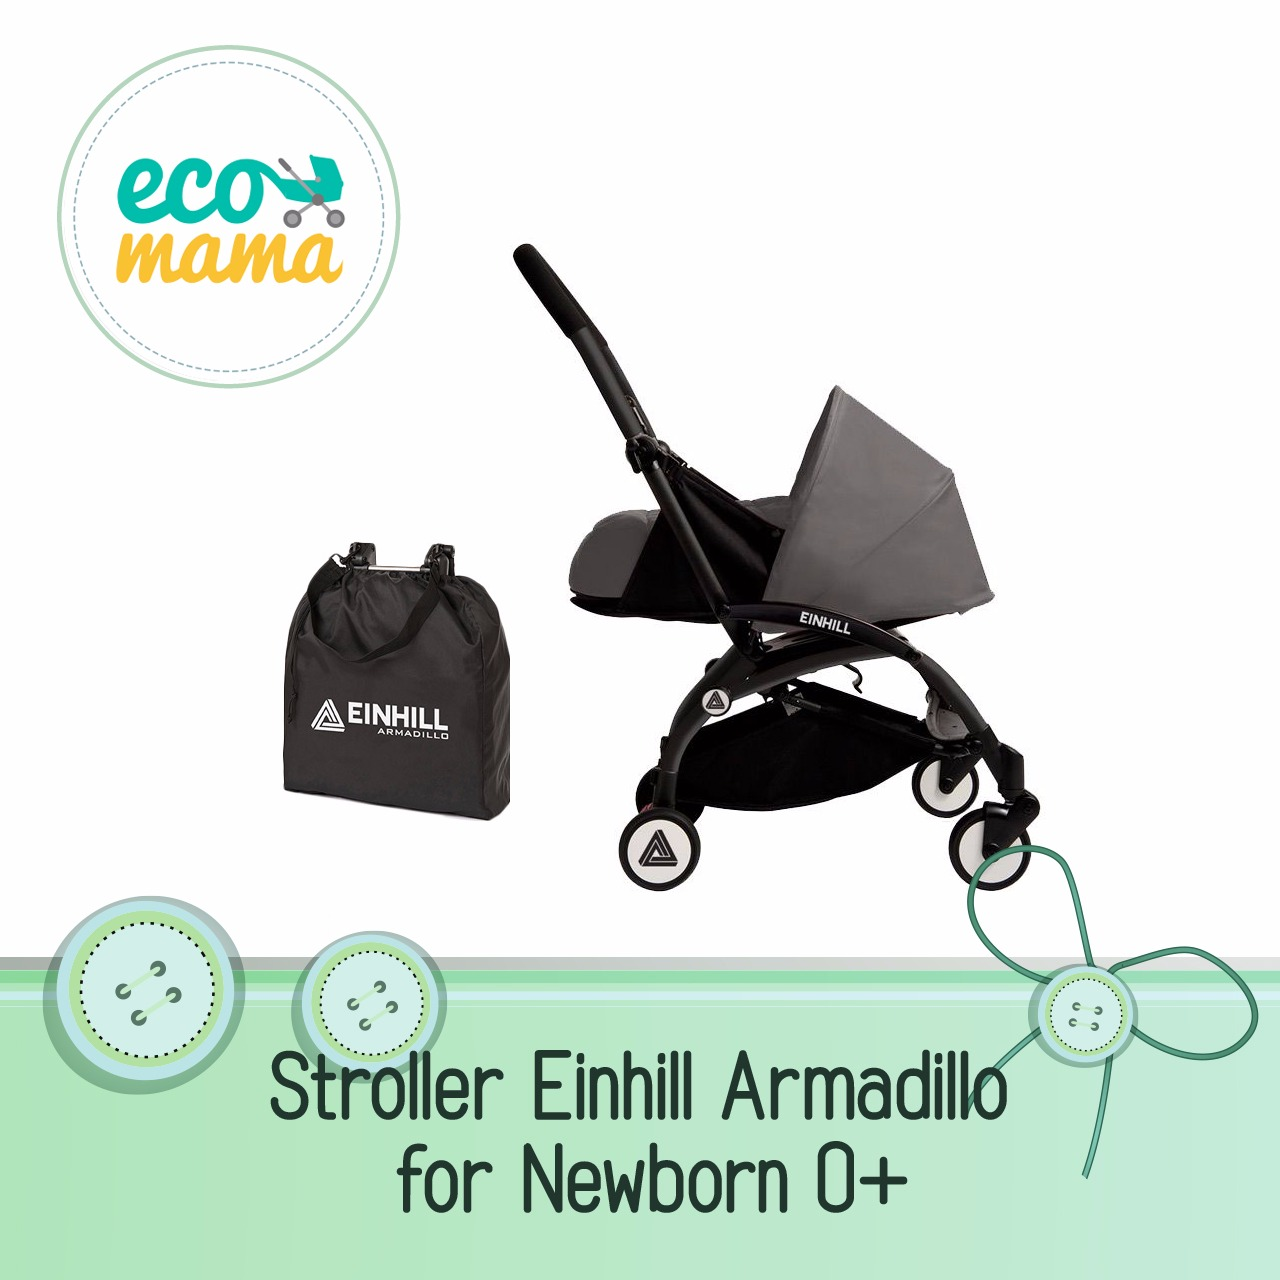 Einhill Armadillo for Newborn